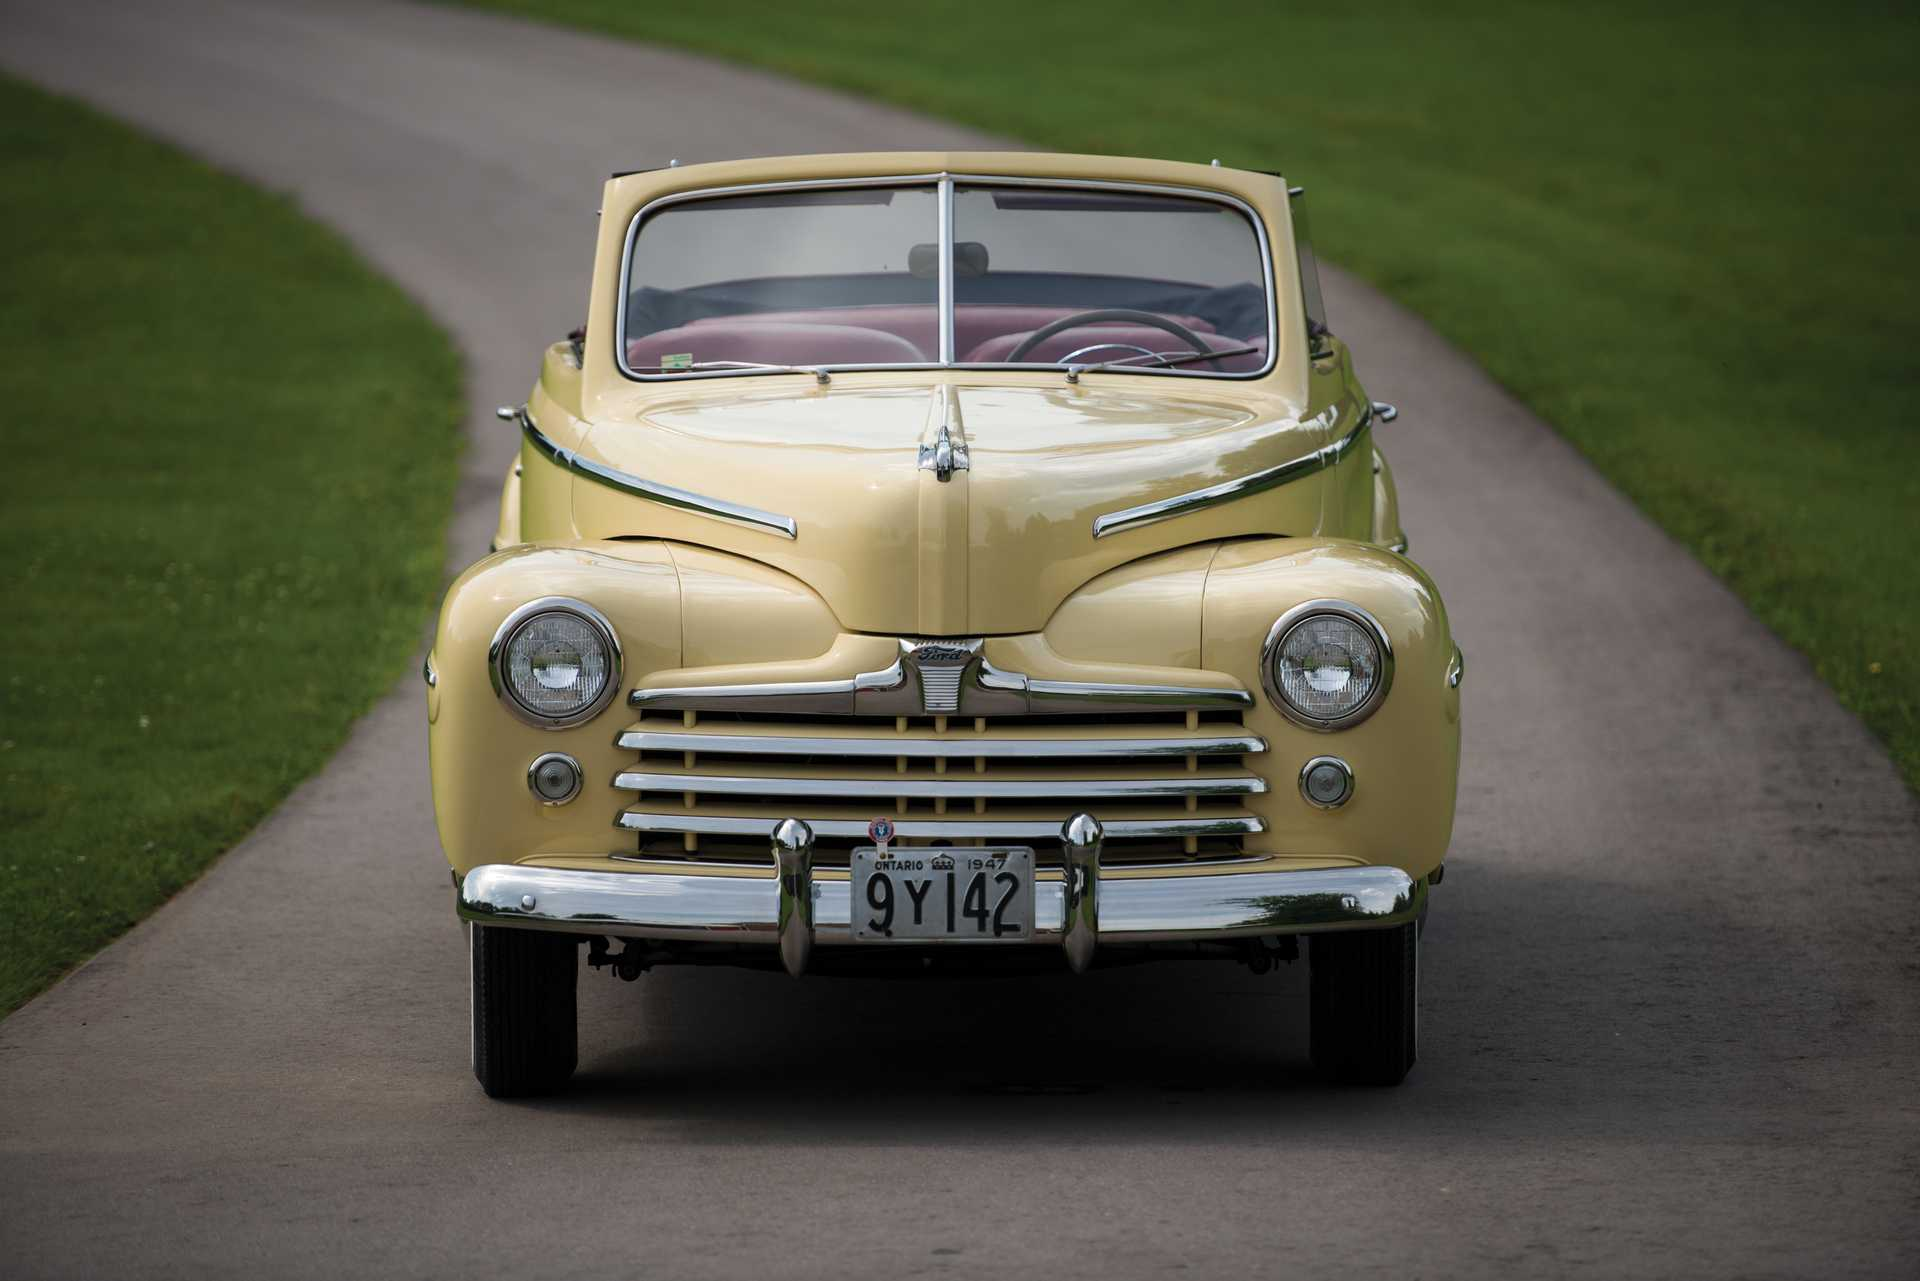 Ford Super Deluxe Convertible Club Coupé 3.9 V8 Manual, 102hp, 1947